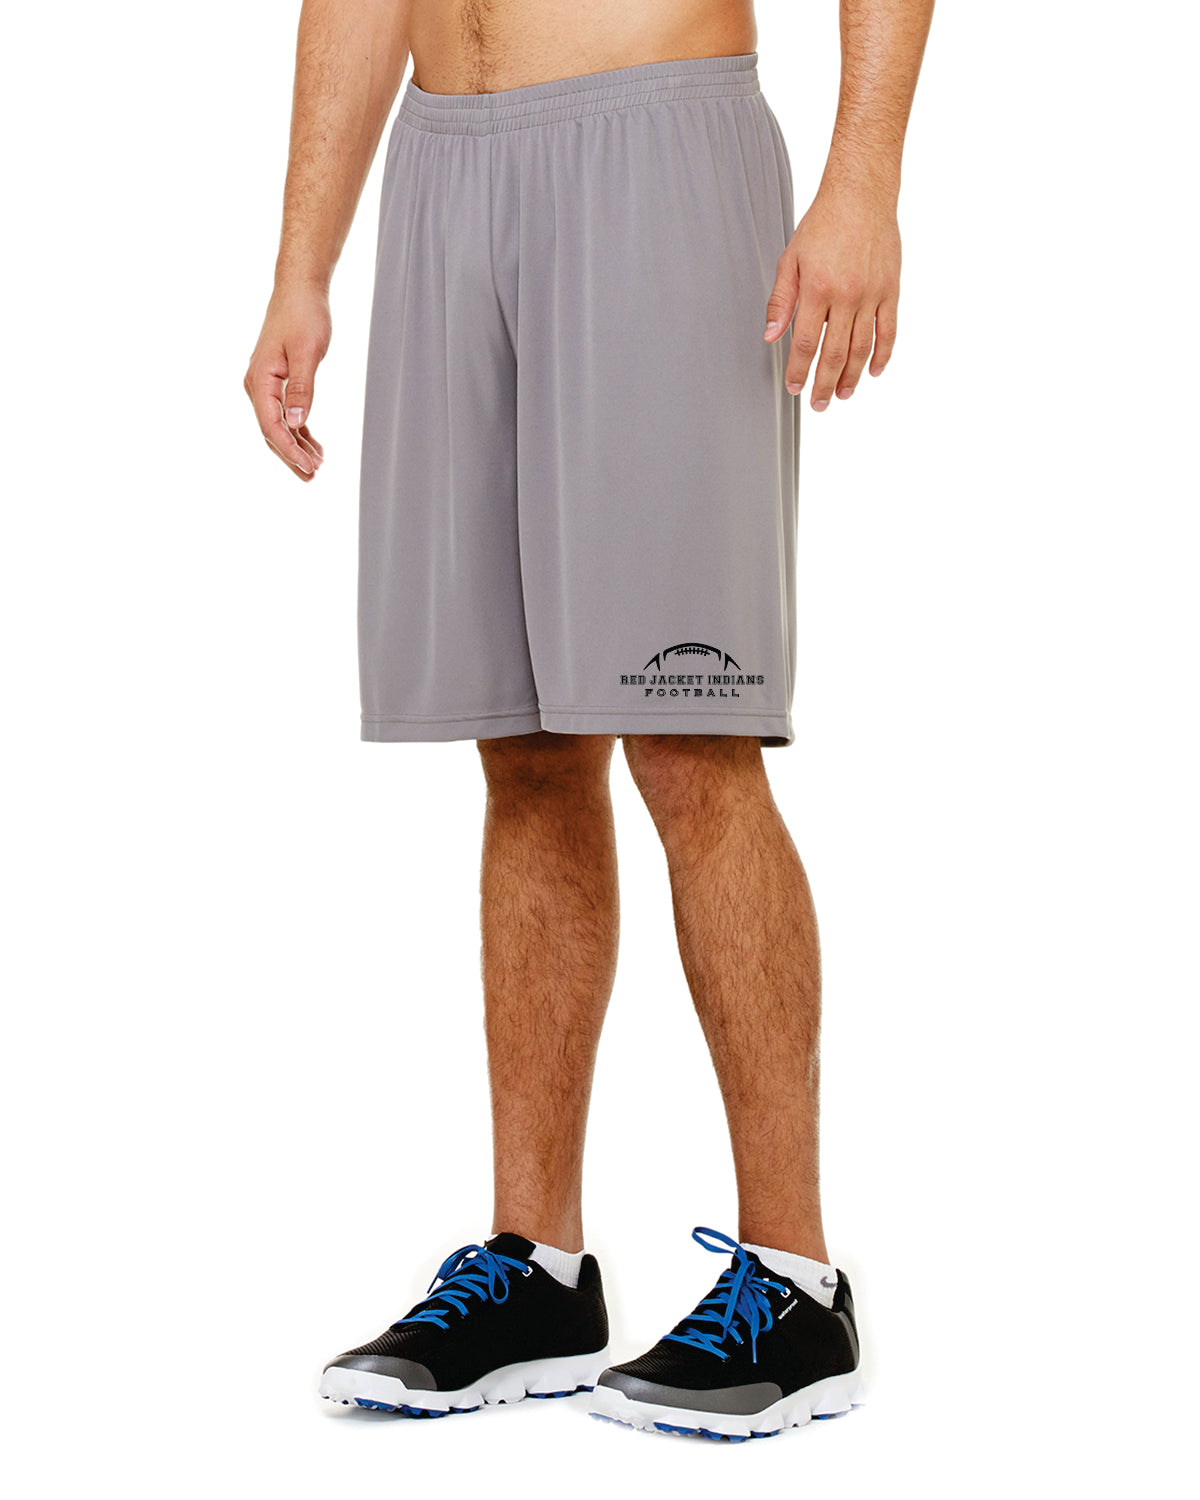 RJ FOOTBALL Team 365 Men's Zone Performance Short